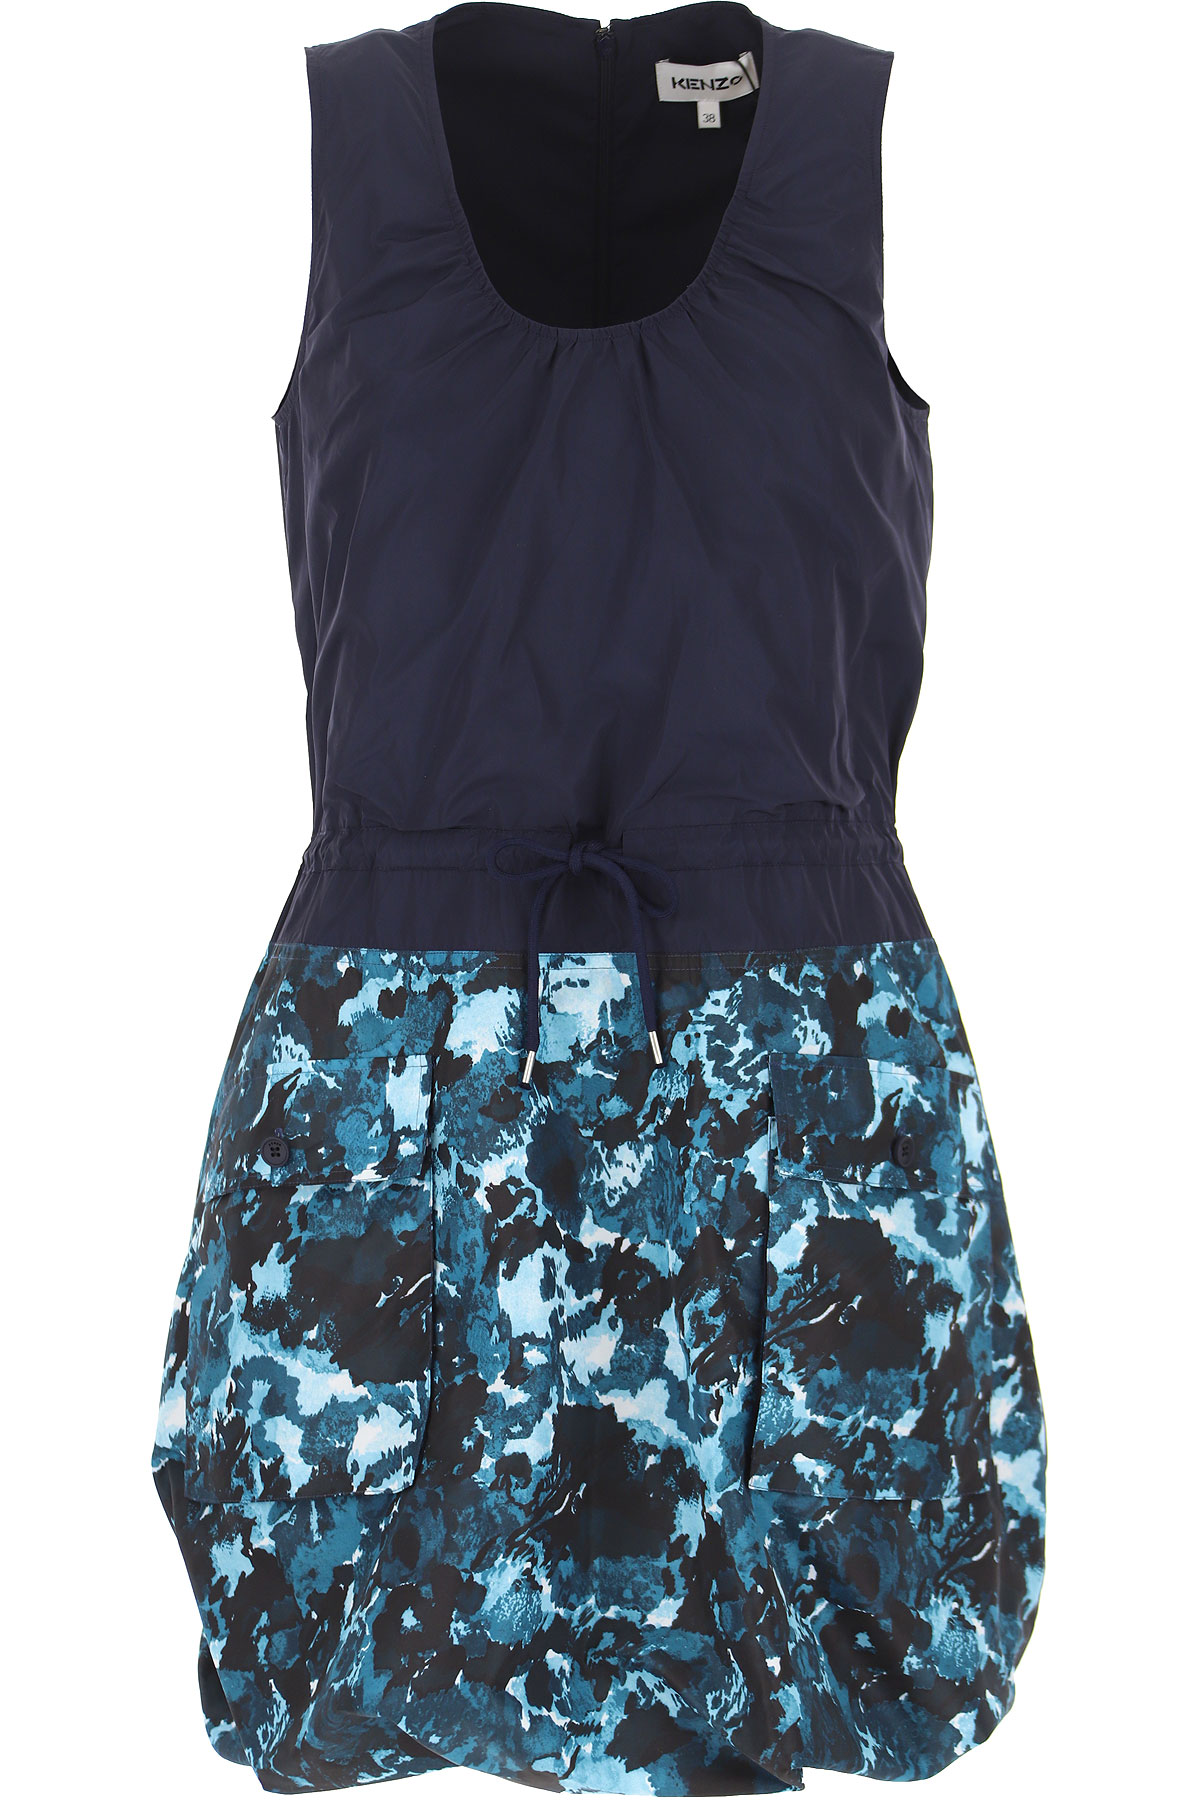 Kenzo Dress for Women, Evening Cocktail Party On Sale, Blue, polyester, 2019, 2